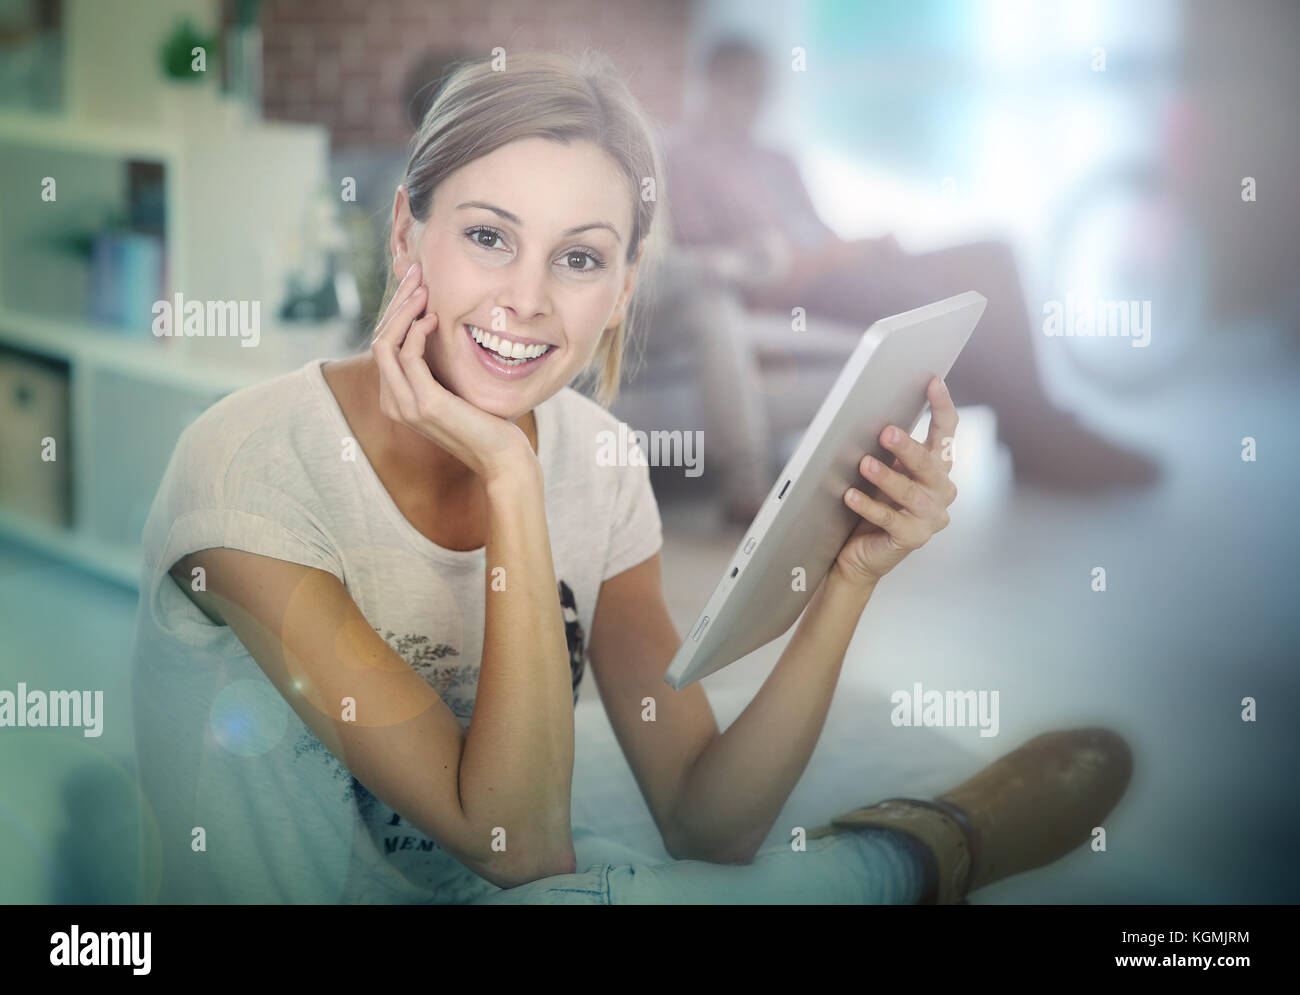 Young woman using digital tablet - Stock Image